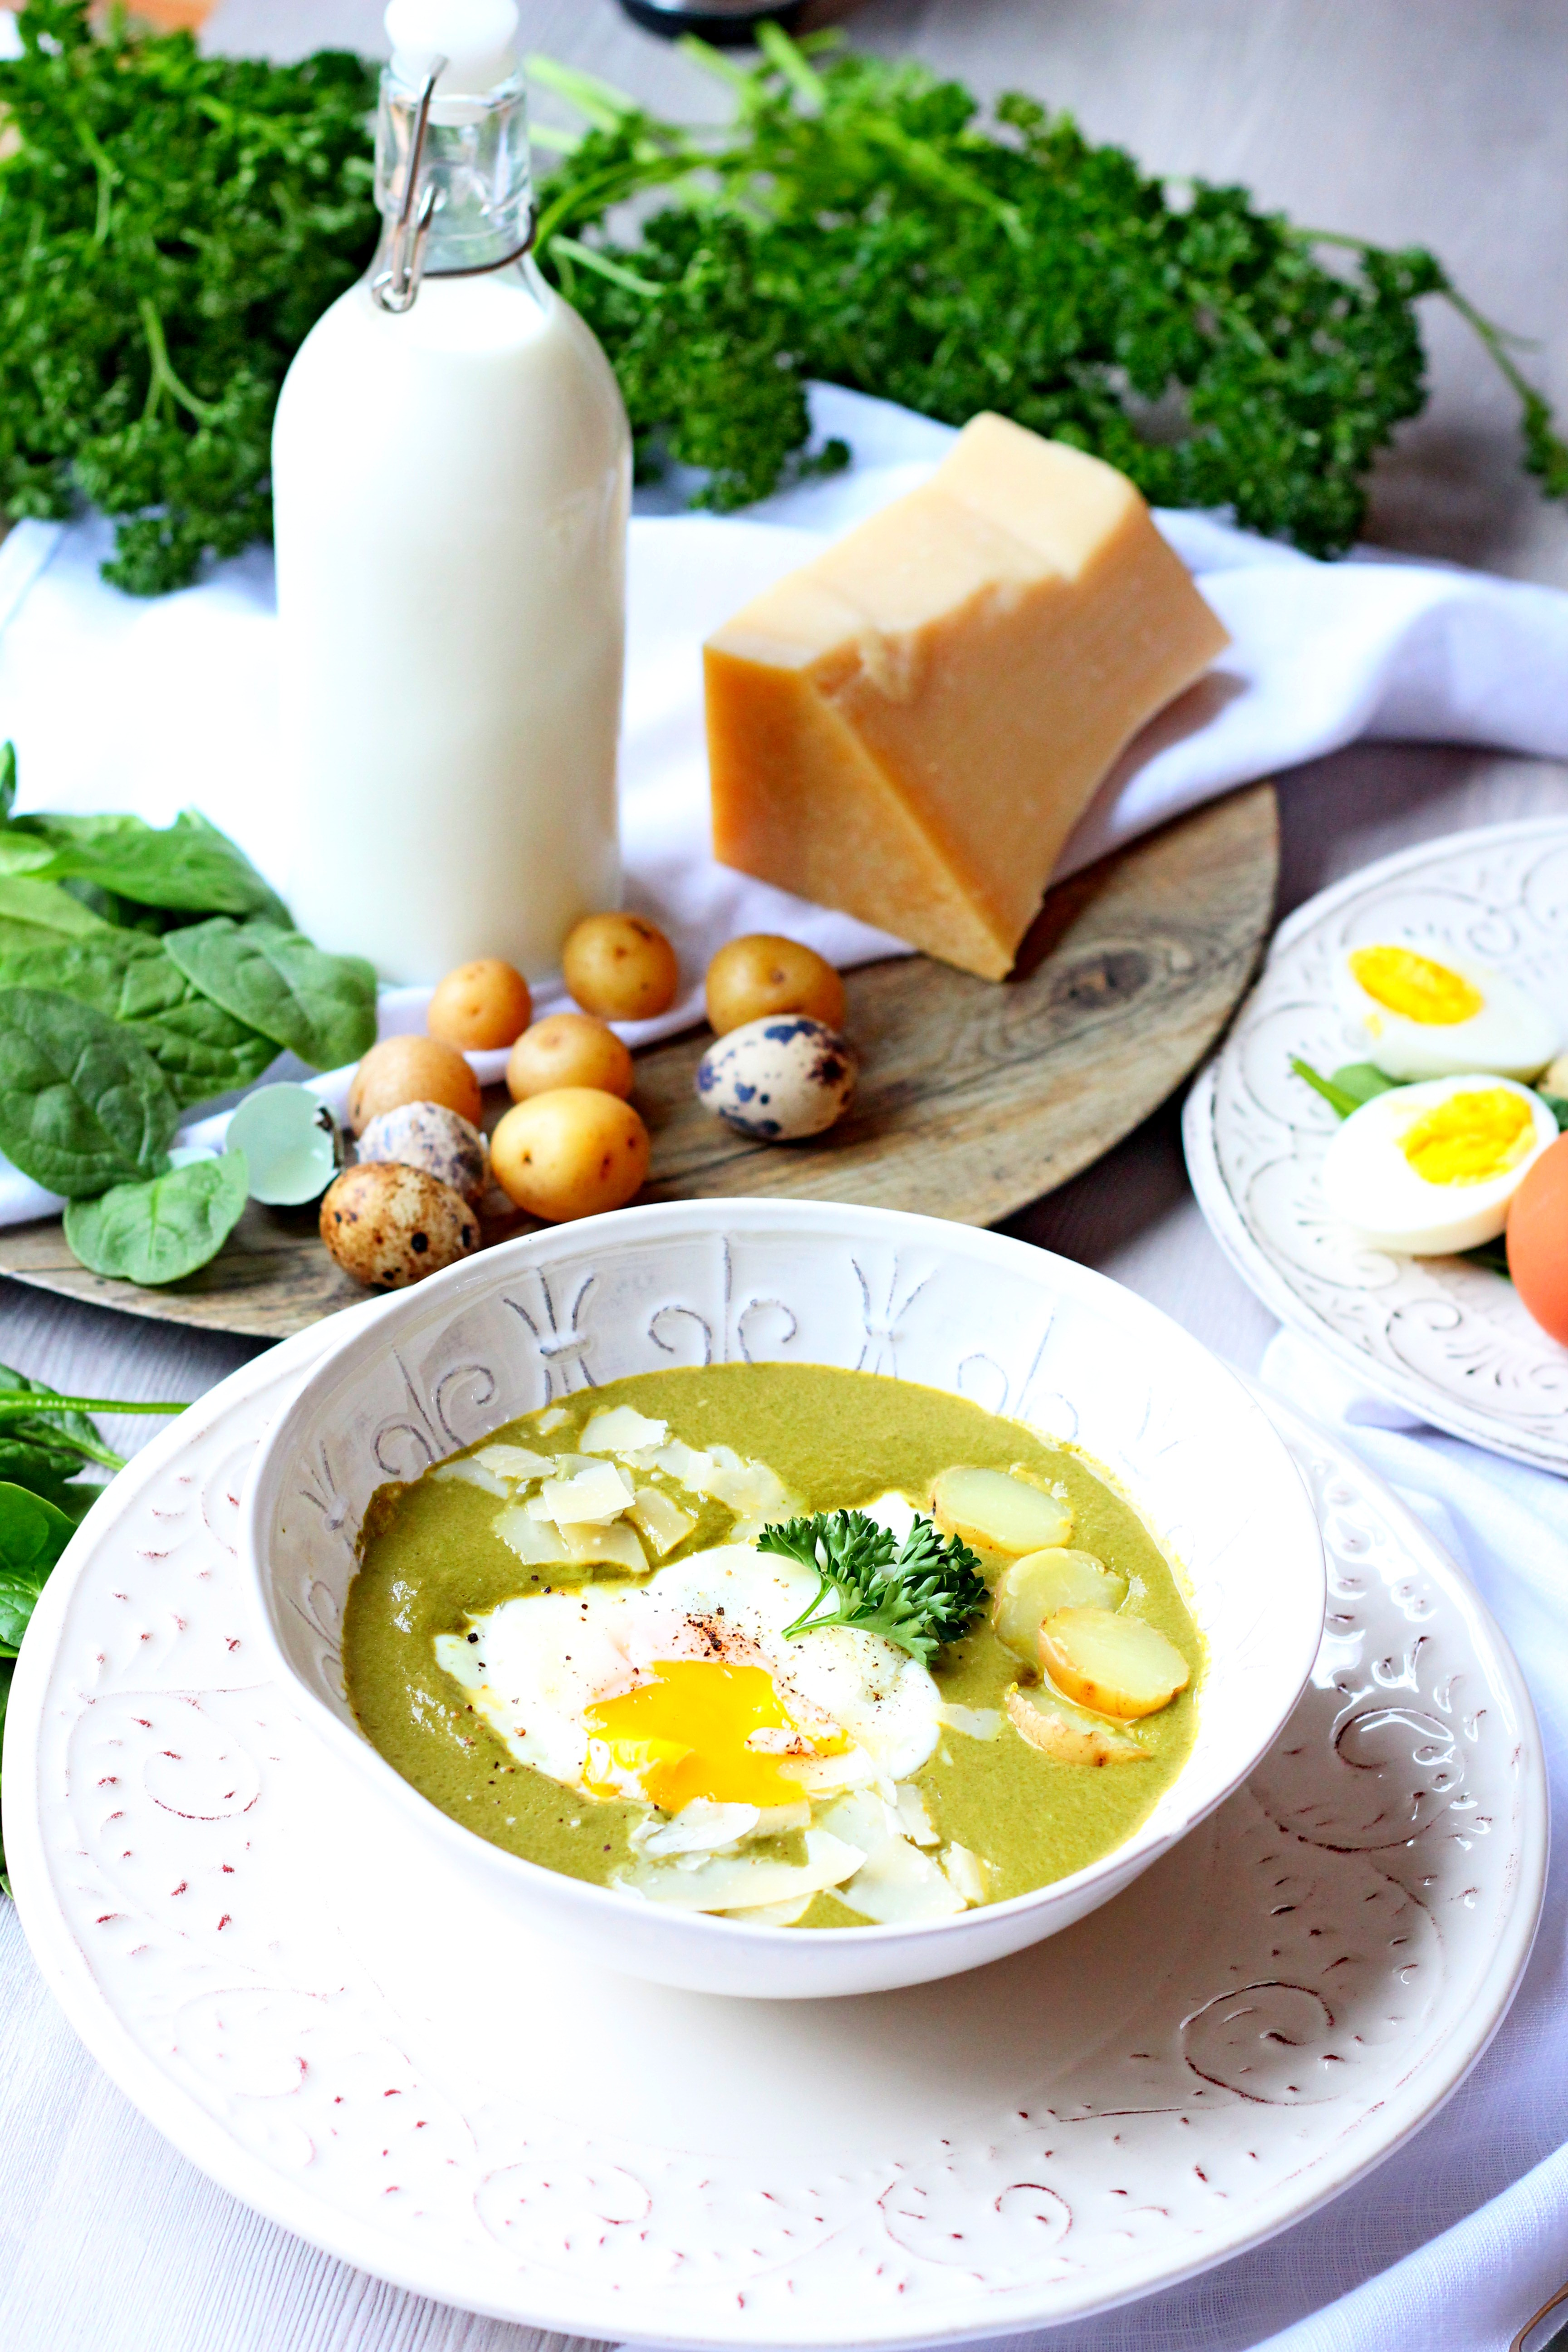 Easter creamy spinach with sunny side up and potatoes